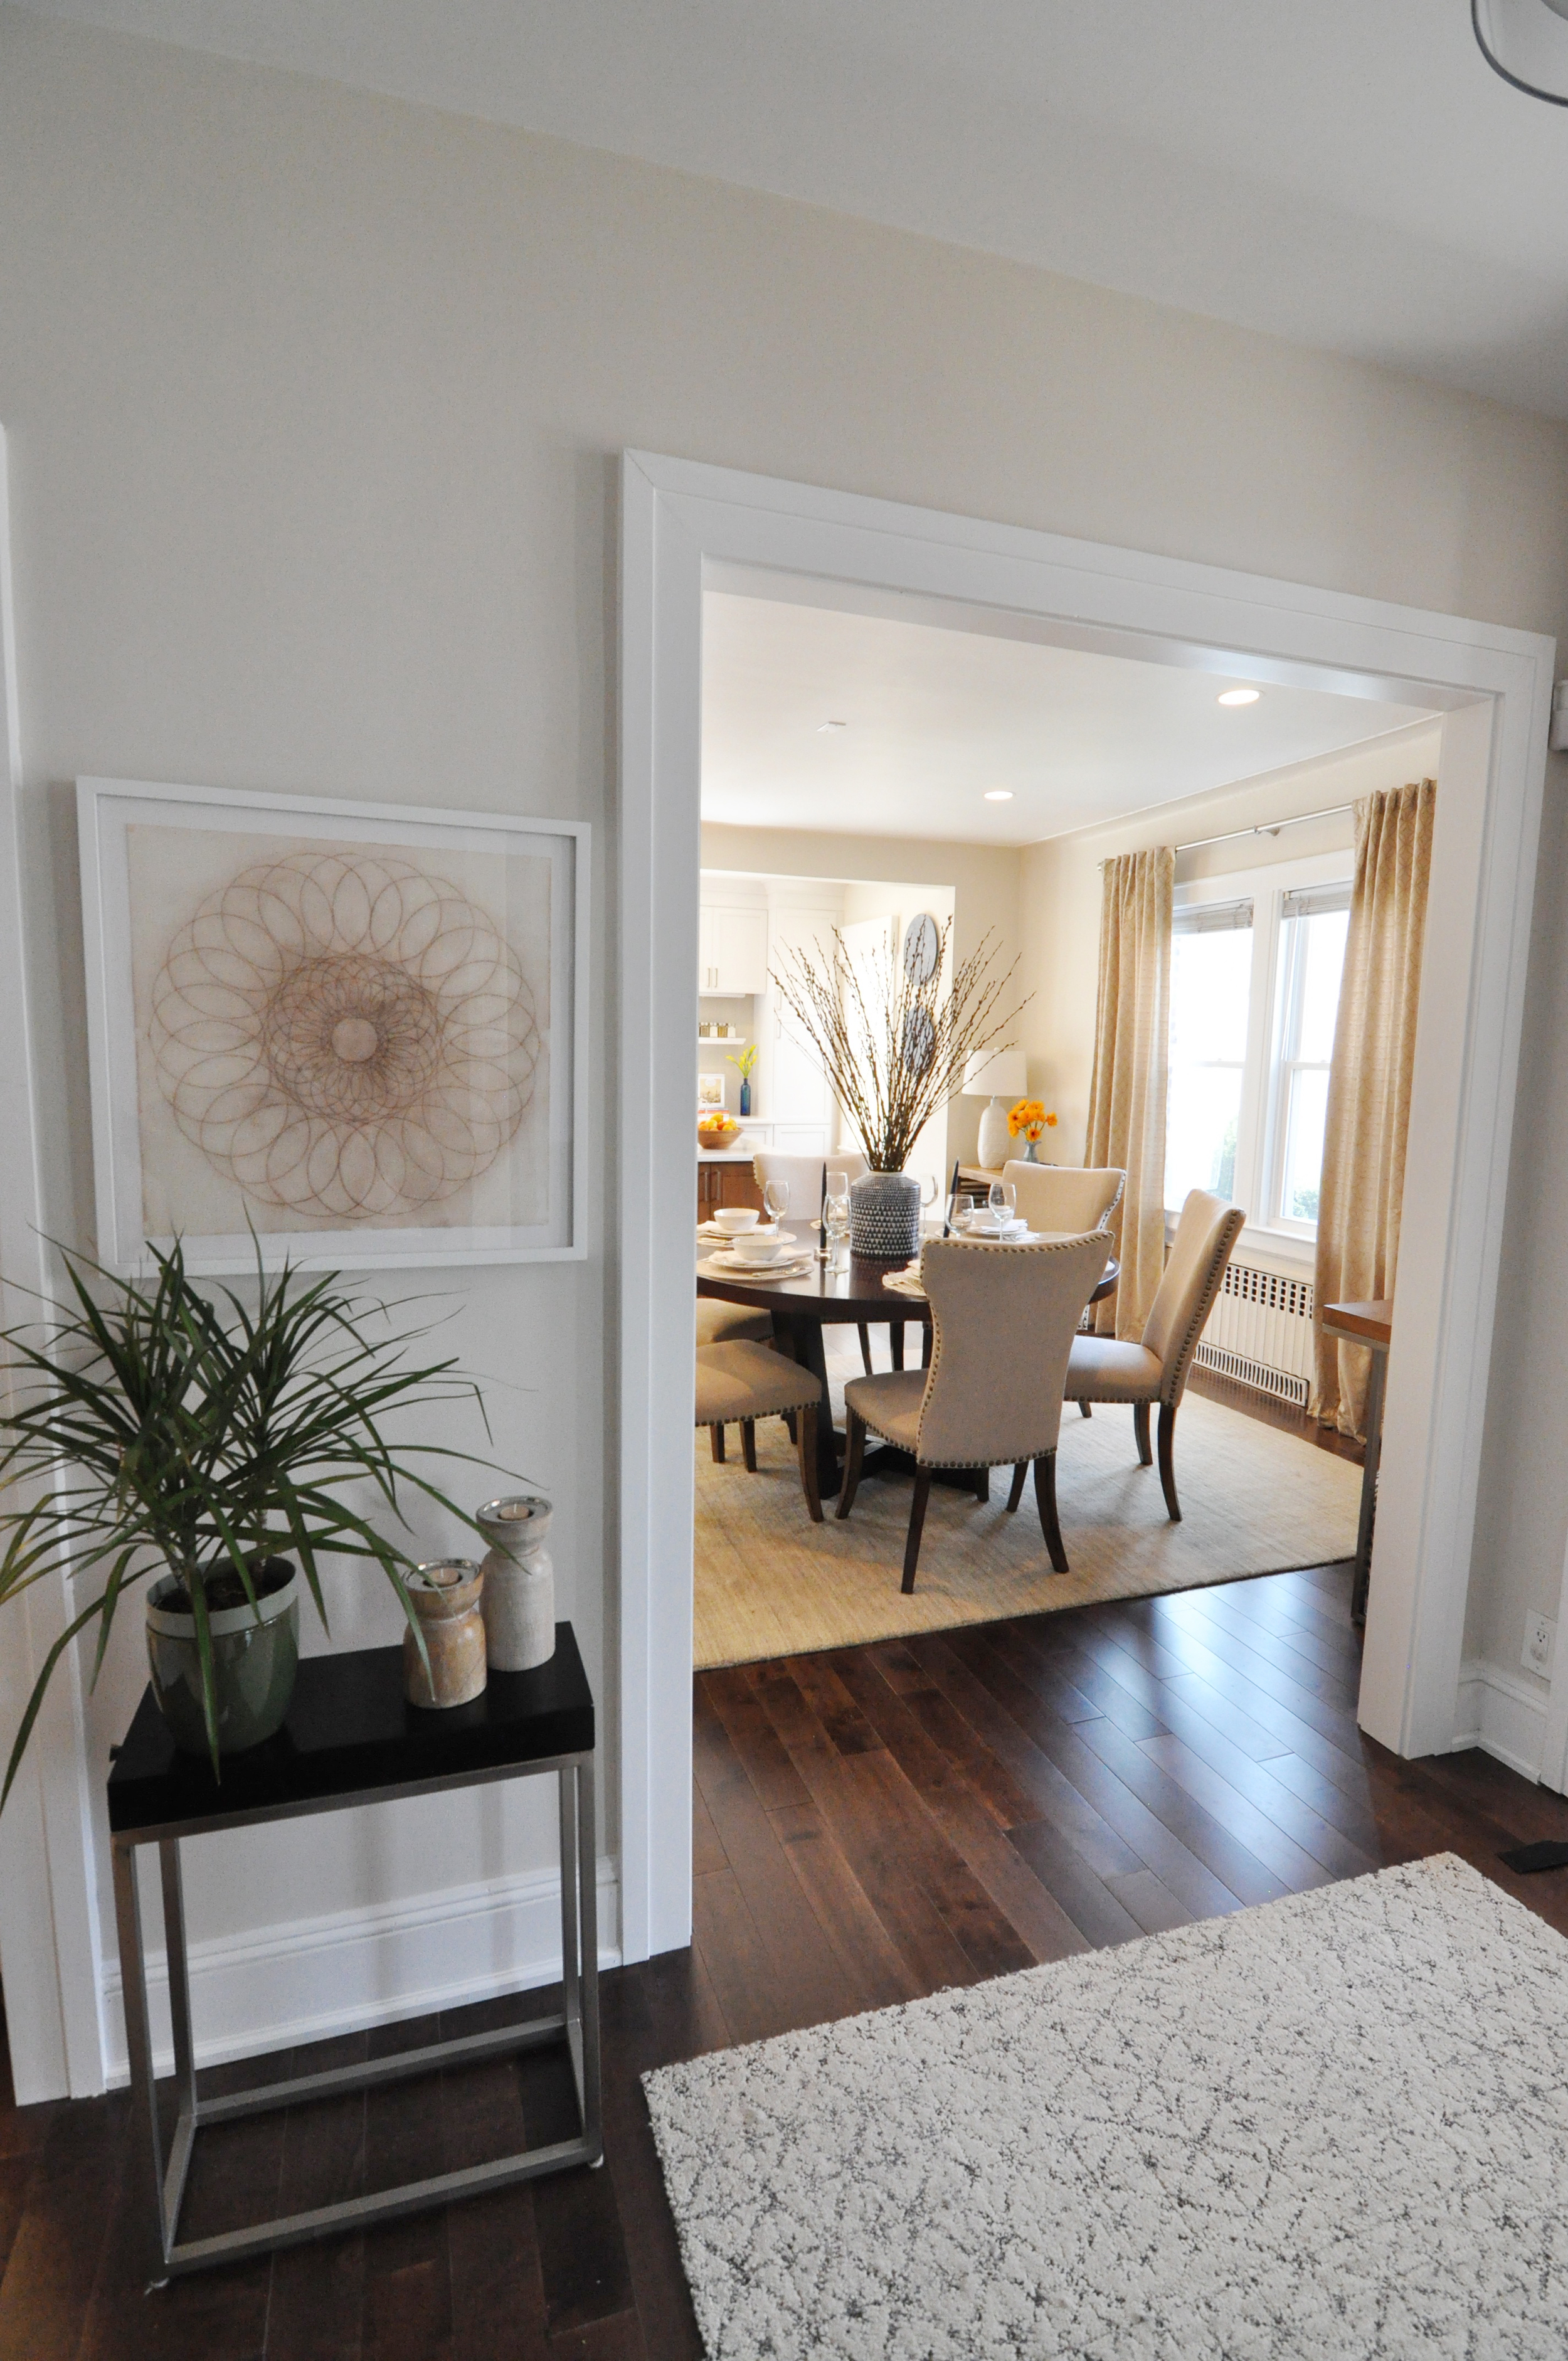 Kim Mitchell Production Designer_HGTV_Buying and Selling with The Property Brothers_Season 3_Episode 315_Entry Hall.jpg